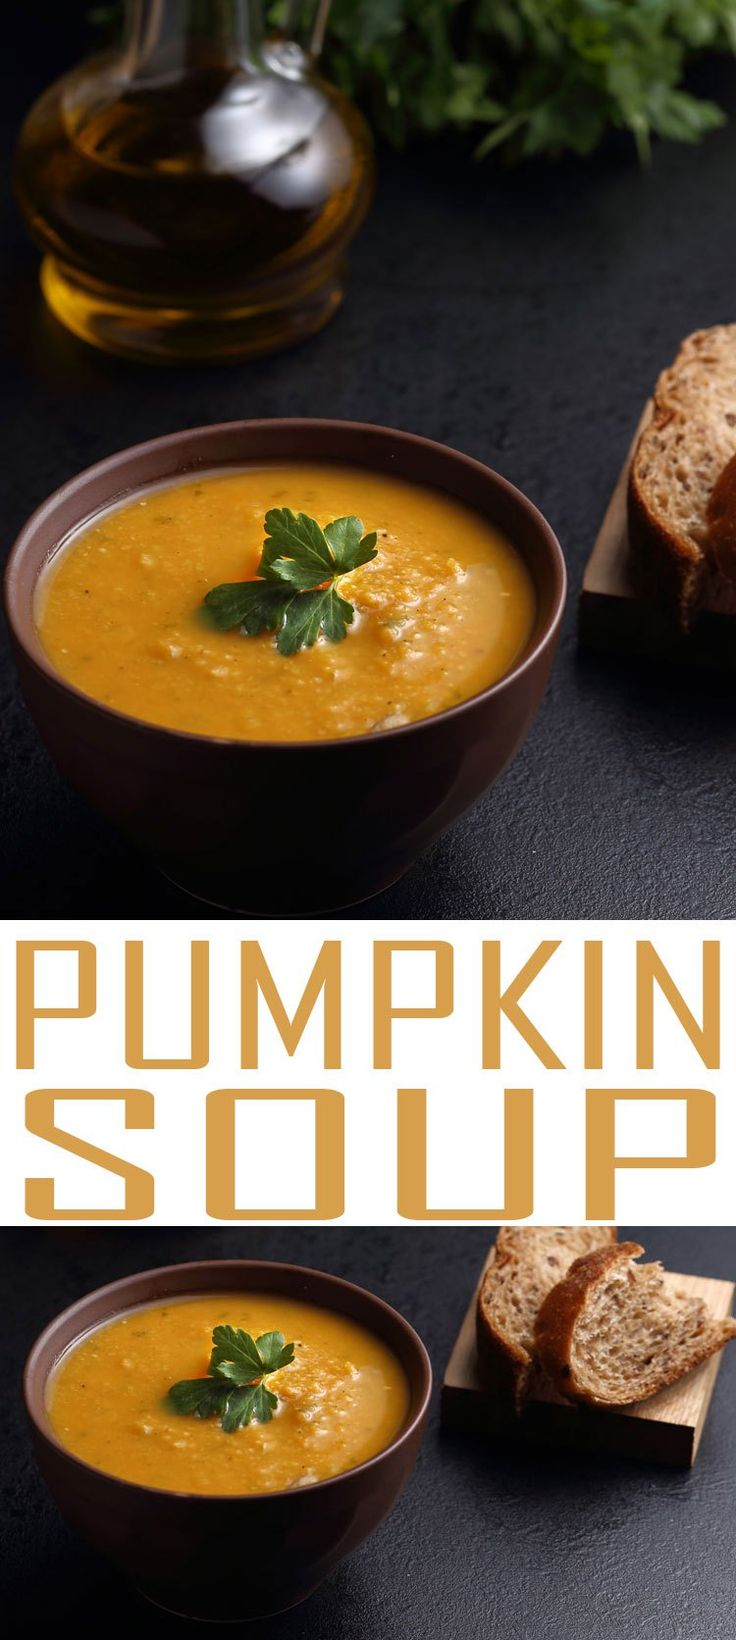 Pumpkin Soup recipe is a perfect way to use up pureed pumpkin from your garden. This hearty winter soup is soothing and healthy.